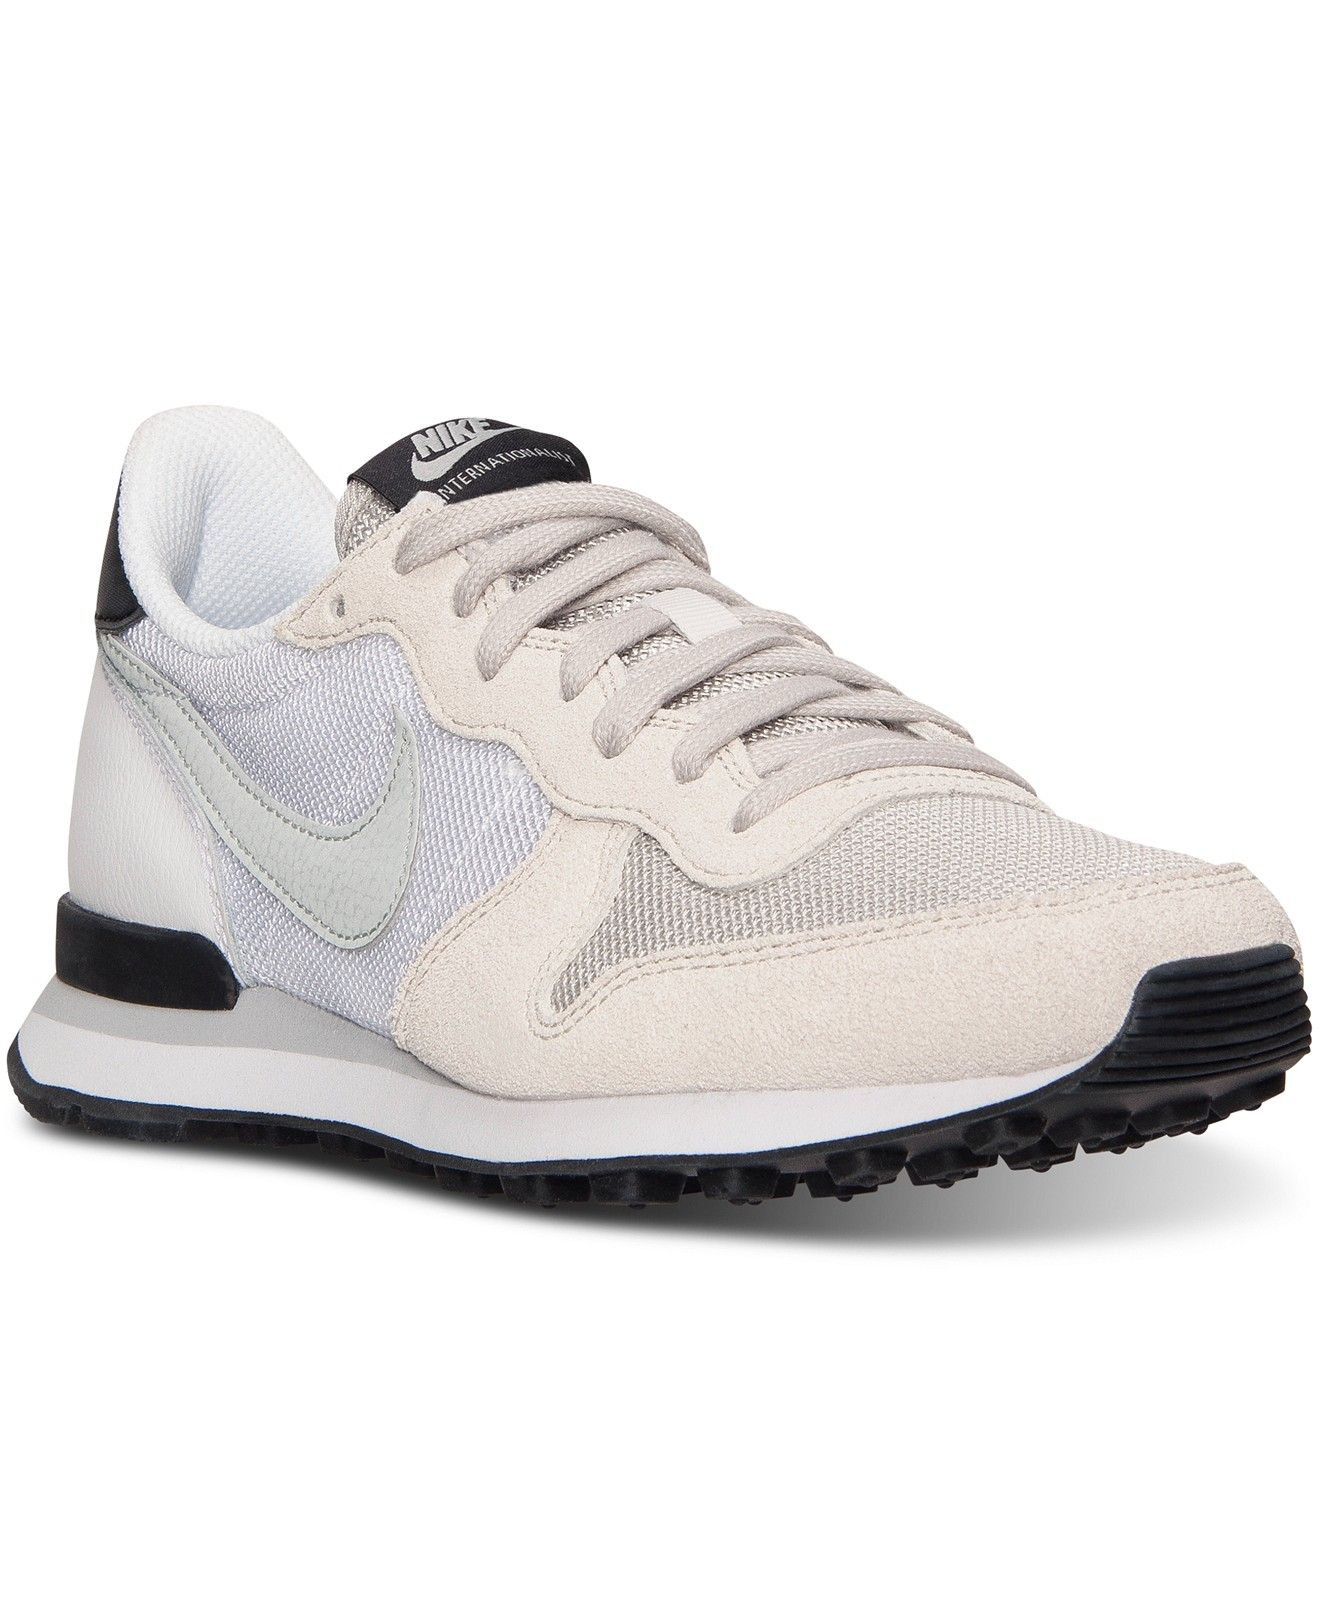 Nike Women's Internationalist Casual Sneakers from Finish Line - Finish  Line Athletic Shoes - Shoes -